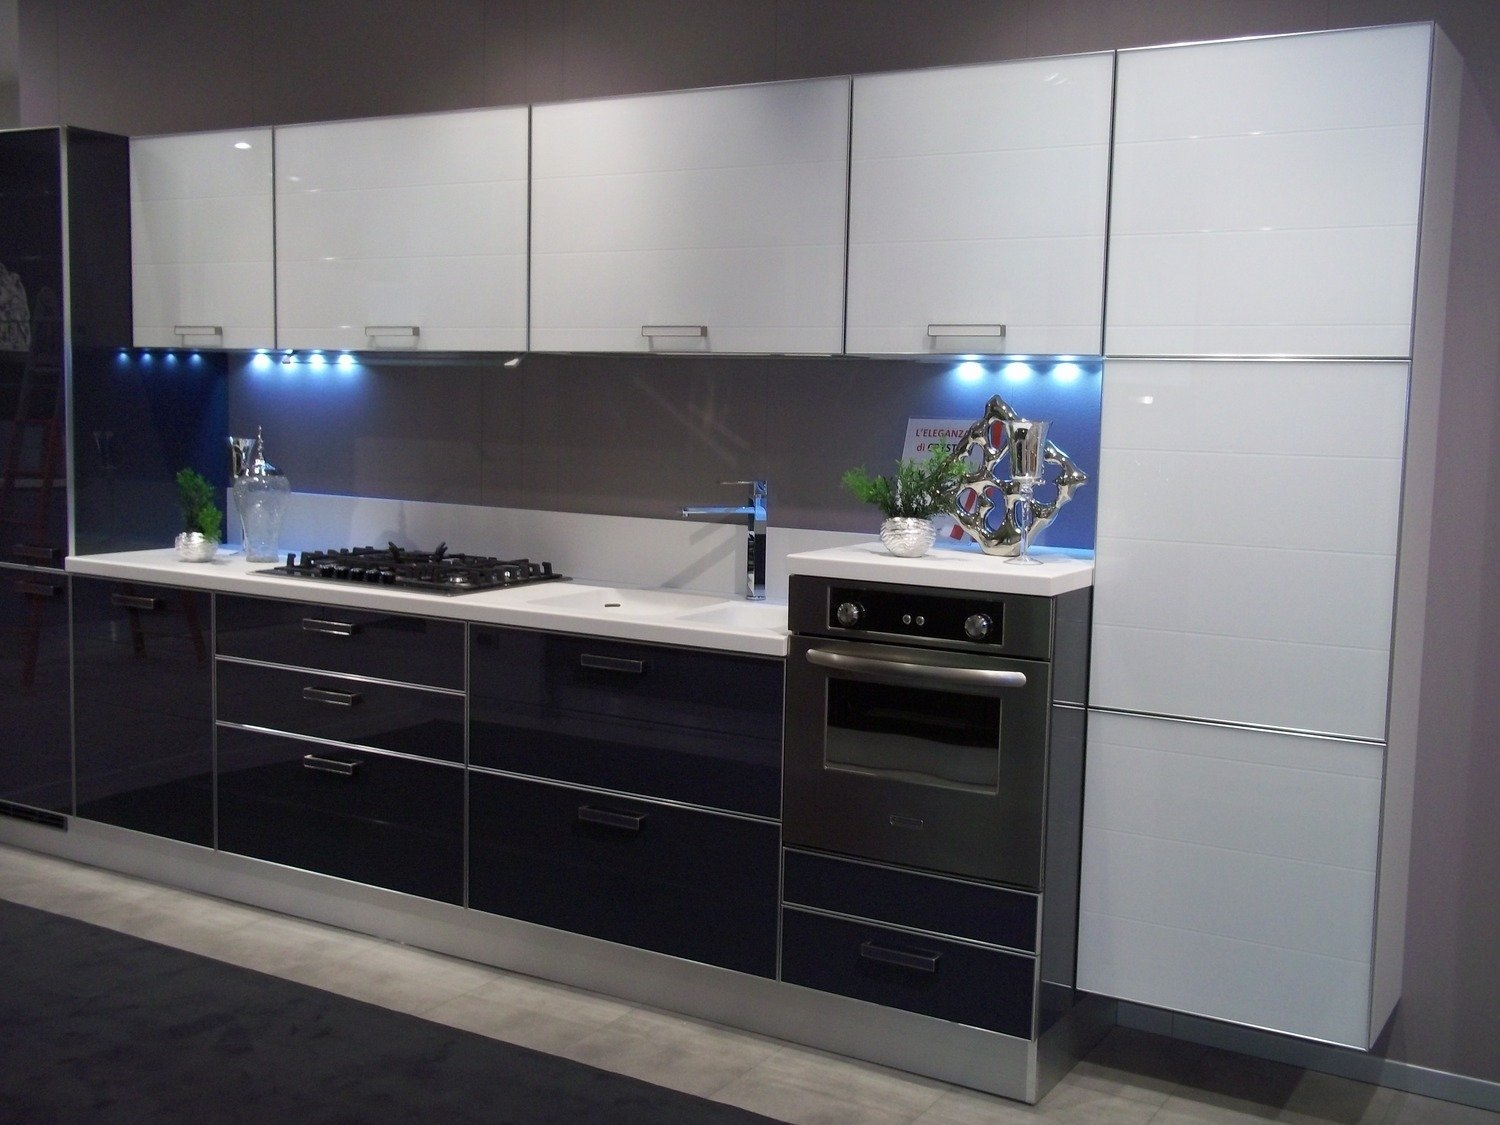 Cucine Moderne Cucine Murano 2 Jpg Pictures to pin on ...